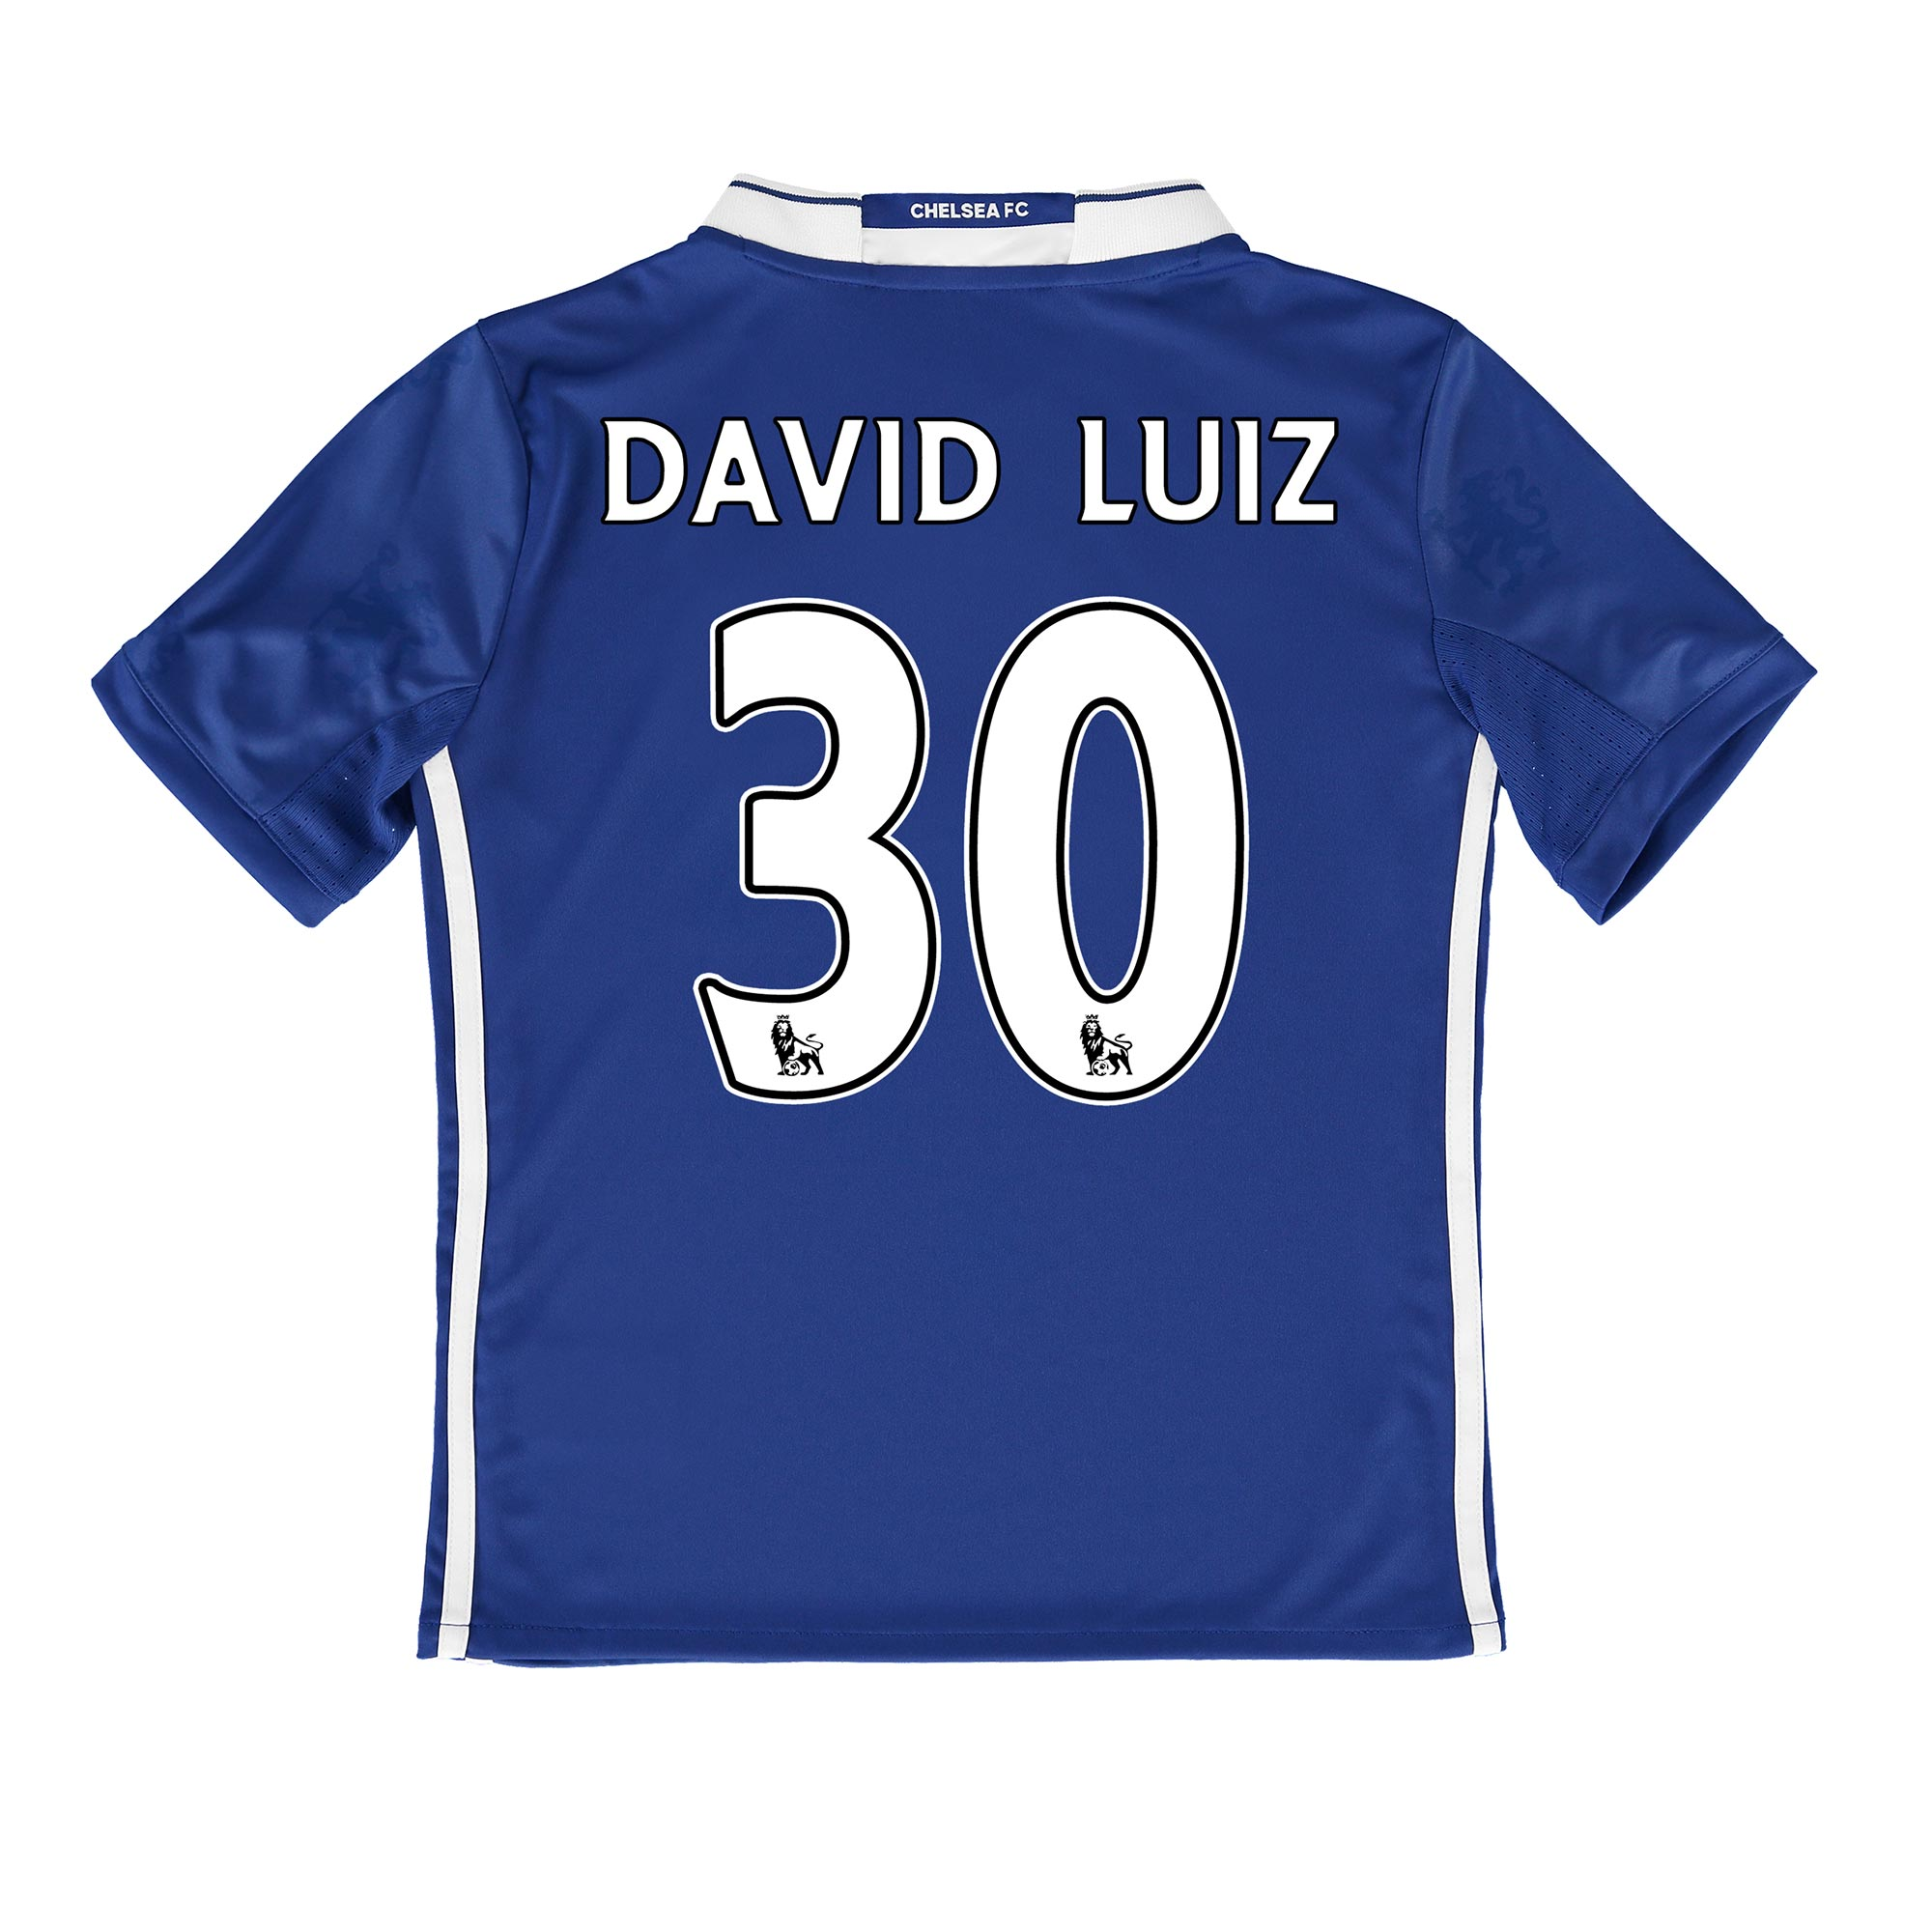 Chelsea Home Shirt 2016-17 - Kids   Inspired by tradition and shaped by legacy, the official Chelsea Home Shirt 2016-17 - Kids restores a classic Stamford Bridge image, with its vintage v-collar drawing allusion to Chelsea sides of yesteryear.   With the club crest's central lion motif forming the basis of a unique, all-over pattern print, the 2016-17 Chelsea kids' home jersey's Three Stripe branding features in a contemporary side placement, completing a winning mix of old and new for the Blues' renewed title challenge.   Benefits:   Climacool® heat and moisture management Printed fabric Club crest: woven badge Engineered Chelsea FC sign off on collar 100% recycled polyester with David Luiz 30 printing